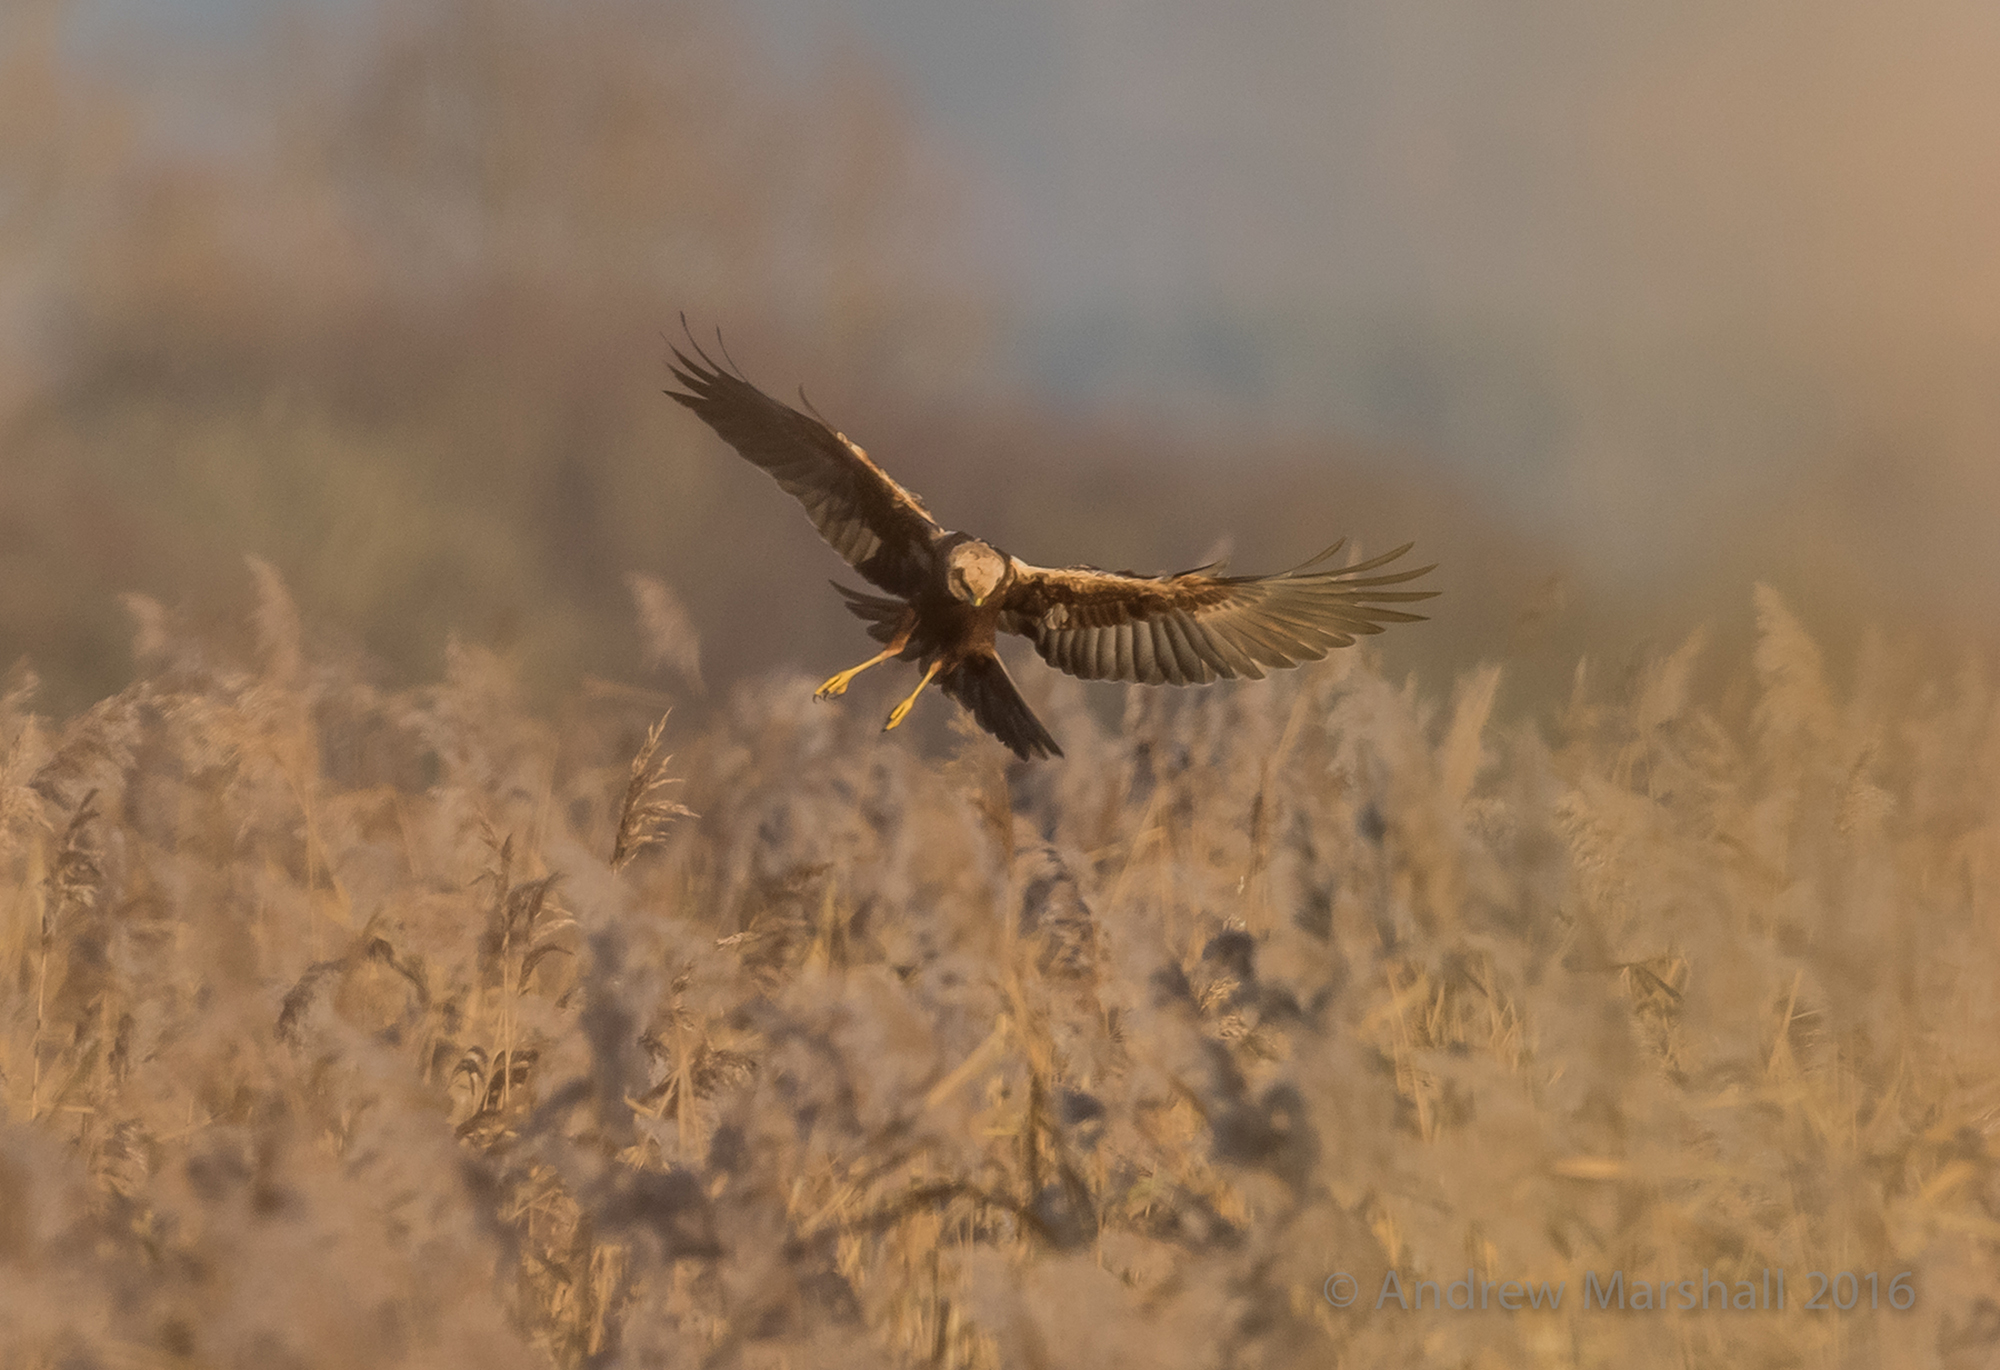 One of the spectacular marsh harriers that have bred for the first time at RSPB Otmoor in Oxfordshire. Nikon D800E, Nikkor 500mm f/4 with a 1.4 x converter at 700mm, ISO 720, 1/1250s at f/8. Handheld. © Andrew Marshall.